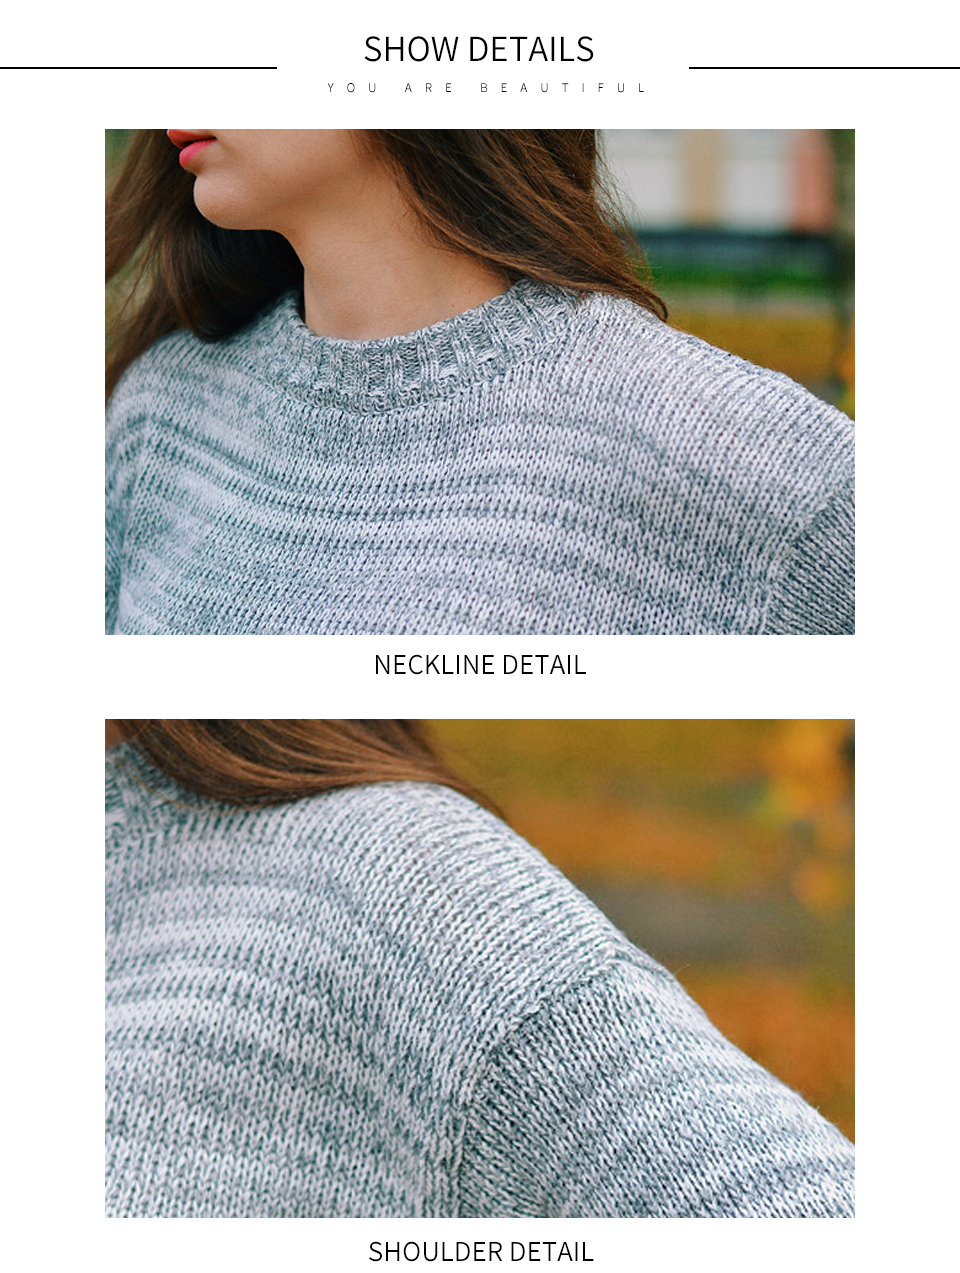 H3685fe45a6284cafbd22ab4035a9a320P - winter knitted women's suit two piece skirt set women clothes ropa mujer conjunto feminino conjuntos de mujer vetement femme